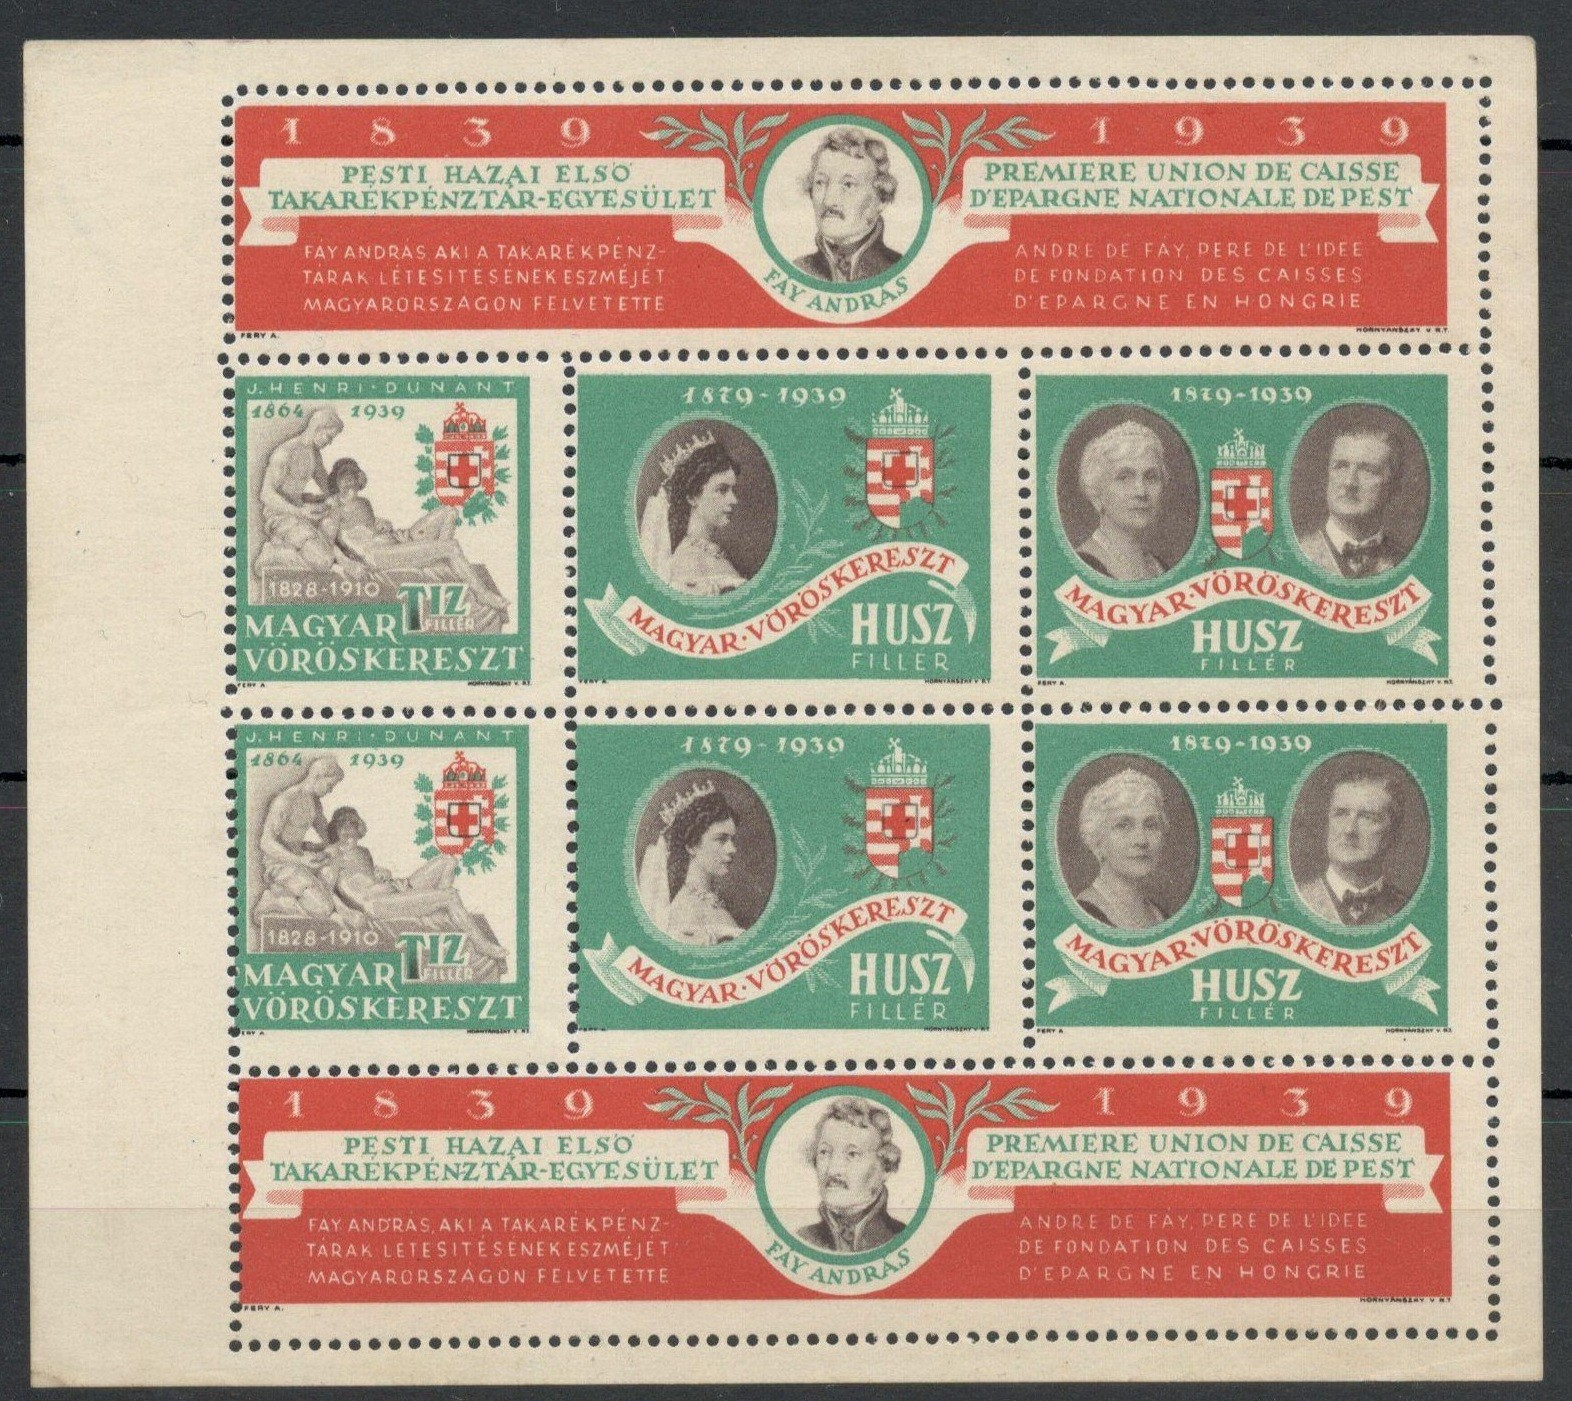 1939 SOUVENIR SHEET CENTENARY OF THE NATIONAL RED CROSS SAVINGS FUND IN HUNGARY